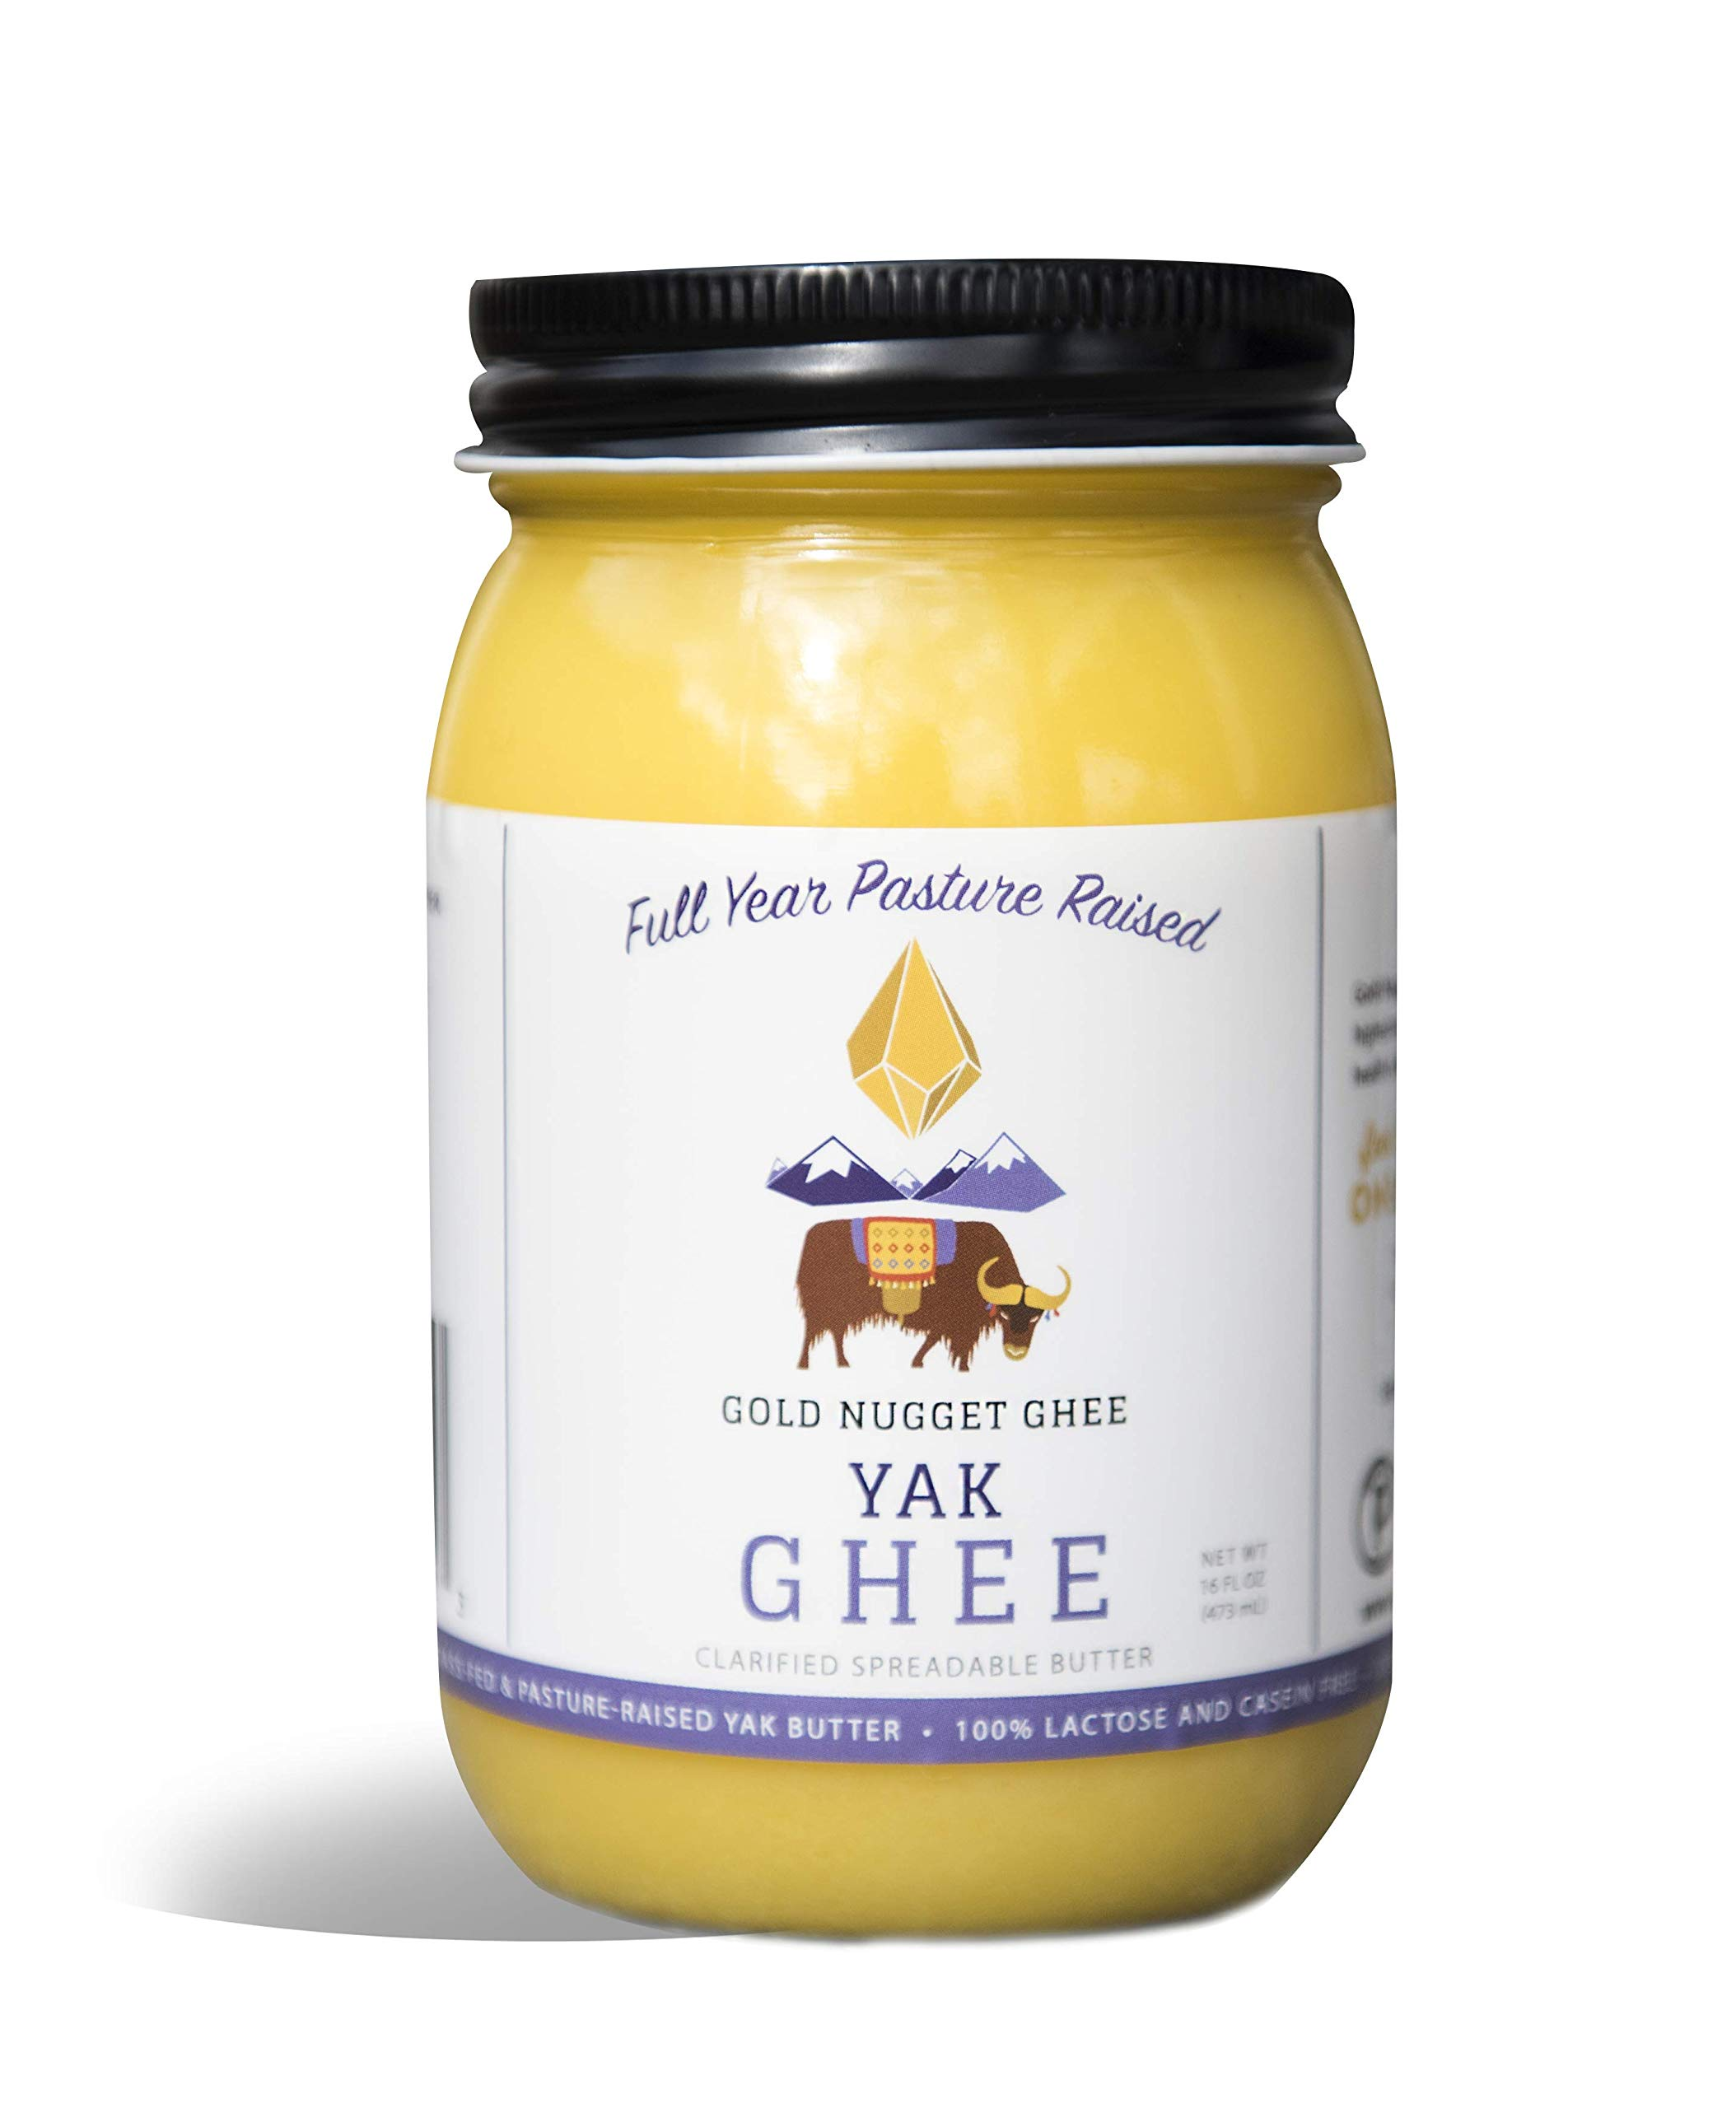 YAK GHEE A2/A2 BY GOLD NUGGET GHEE, FULL-YEAR/PASTURE-RAISED, GRASS-FED BUTTER, KETO & PALEO 16oz by Gold Nugget Ghee (Image #1)